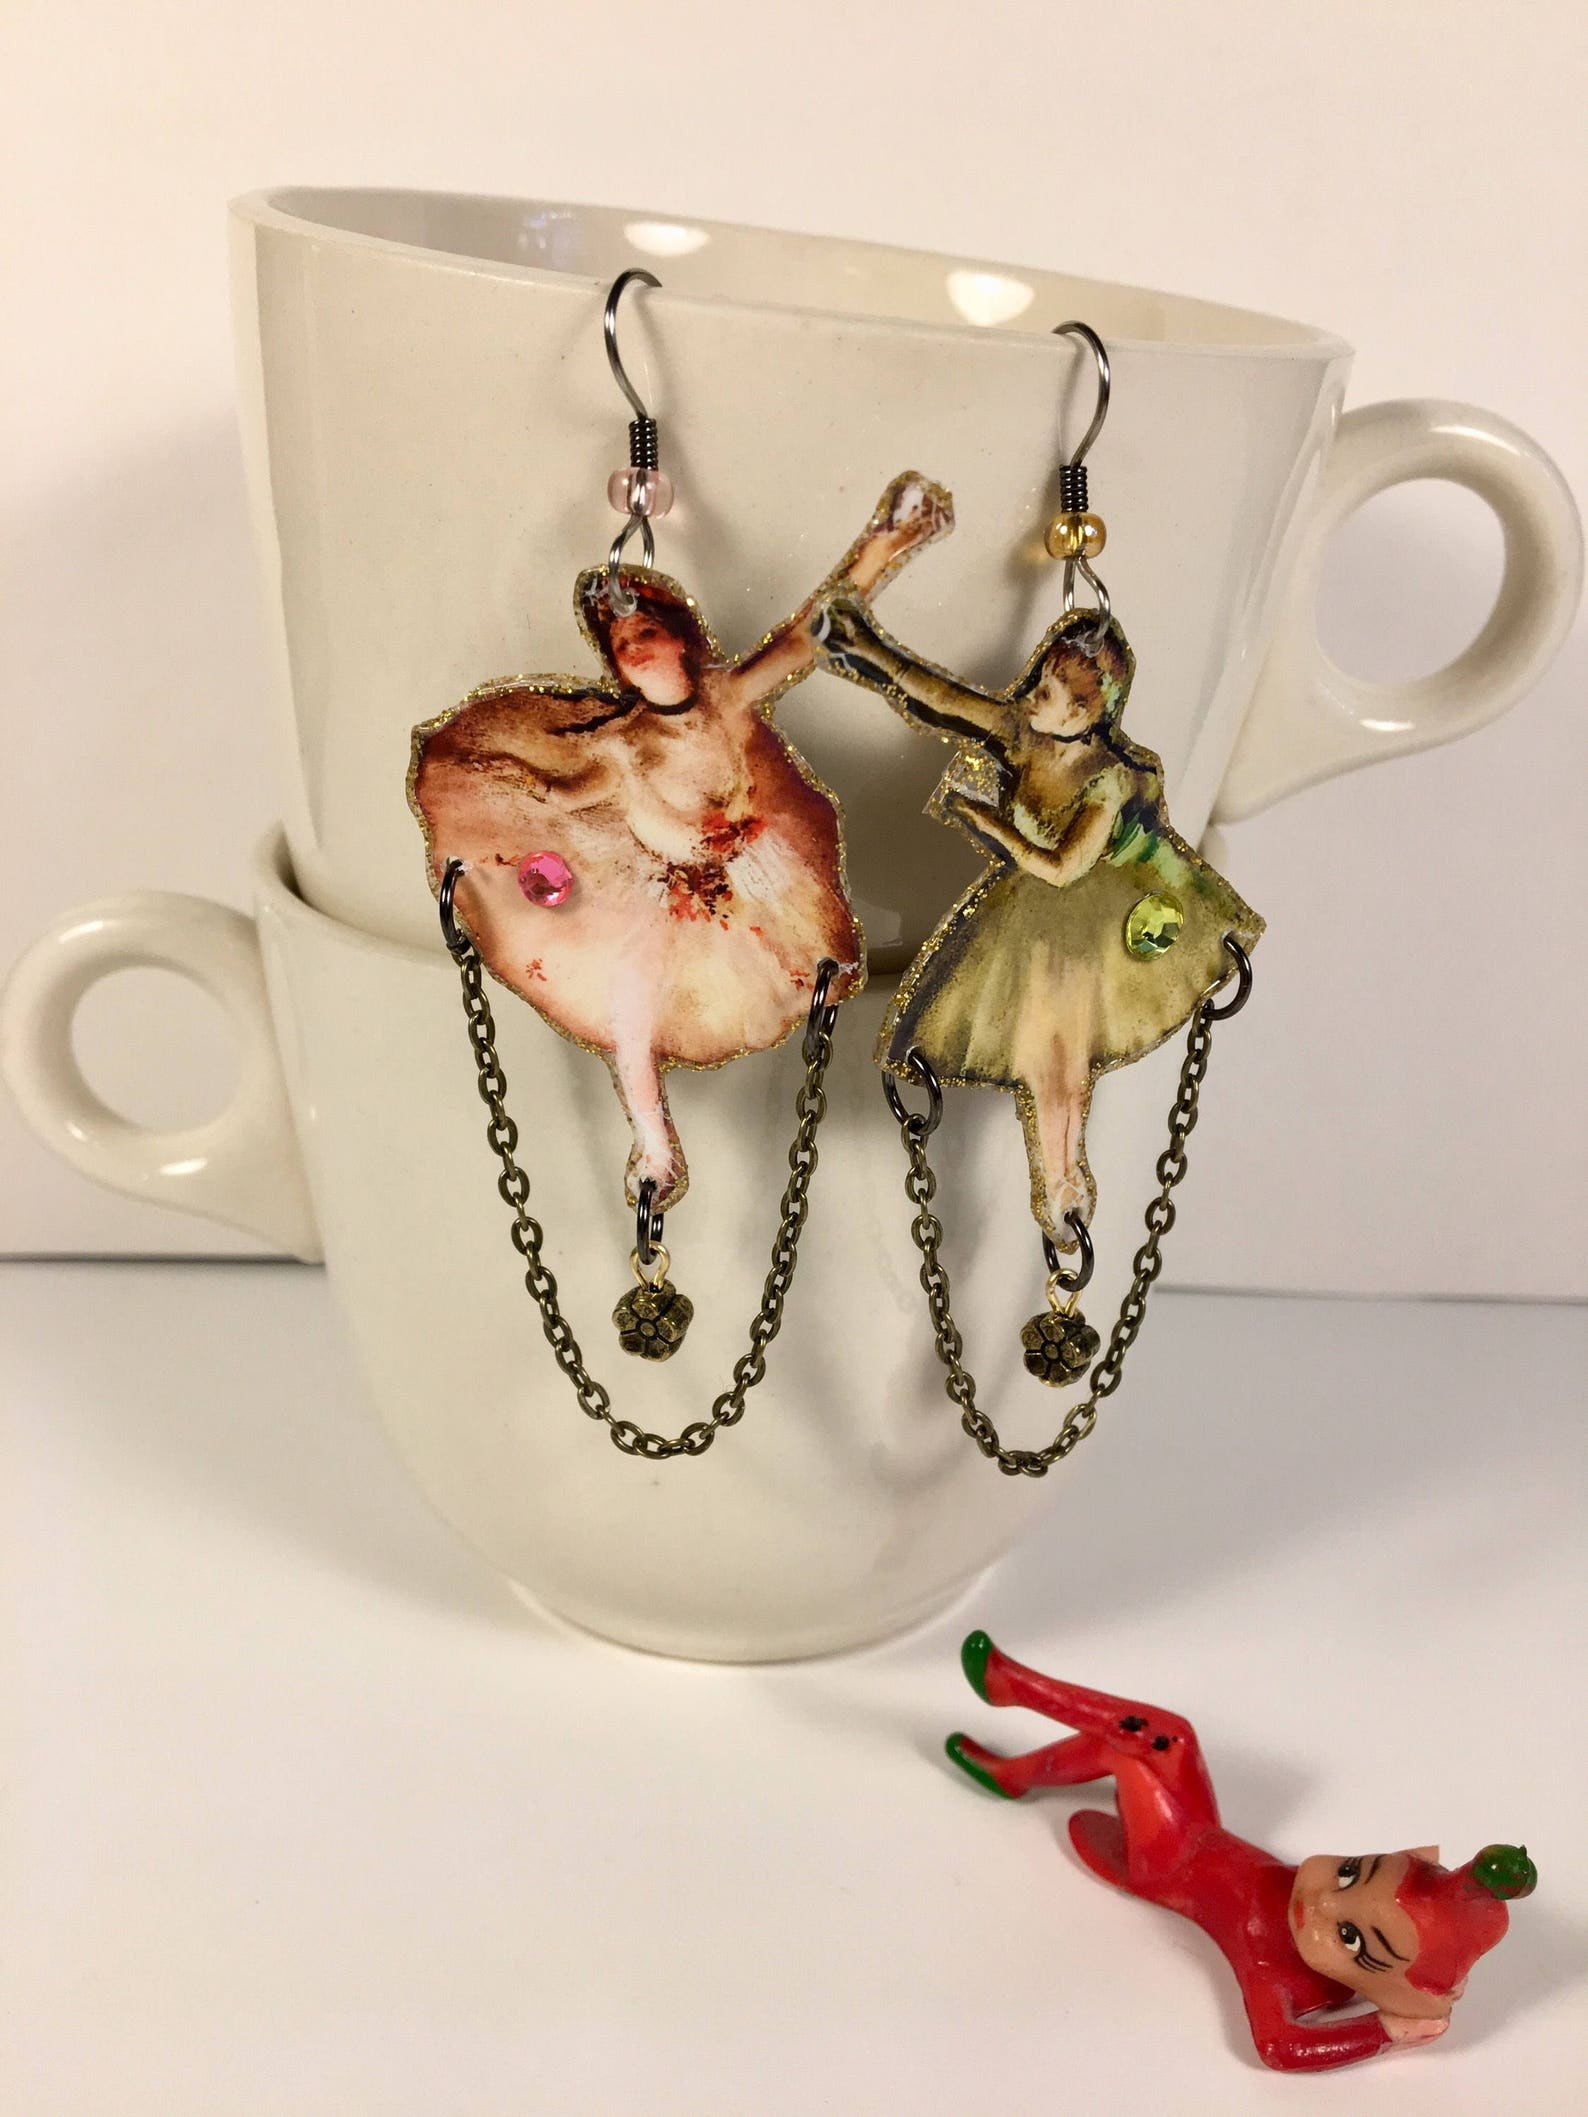 edgar degas earrings ballet dancers paris artist painter old masters impressionist l'absinthe ballerina